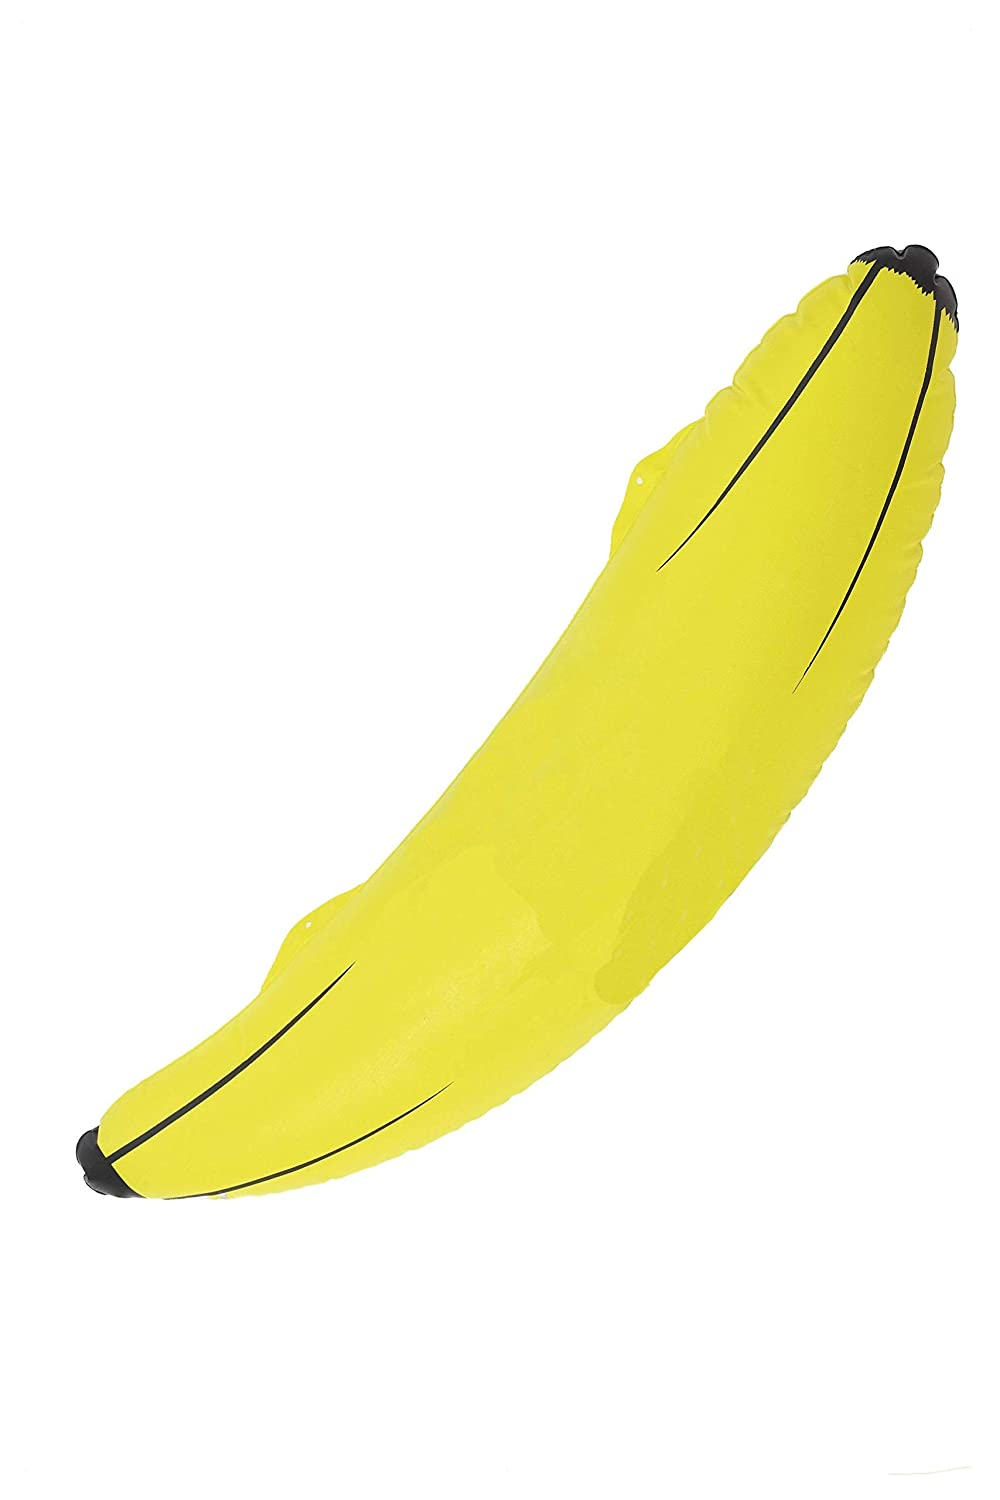 Smiffys-26742 Inflable Banana, Hinchable, 73cm/28 Pulgadas, Color Amarillo, No es Applicable (26742)